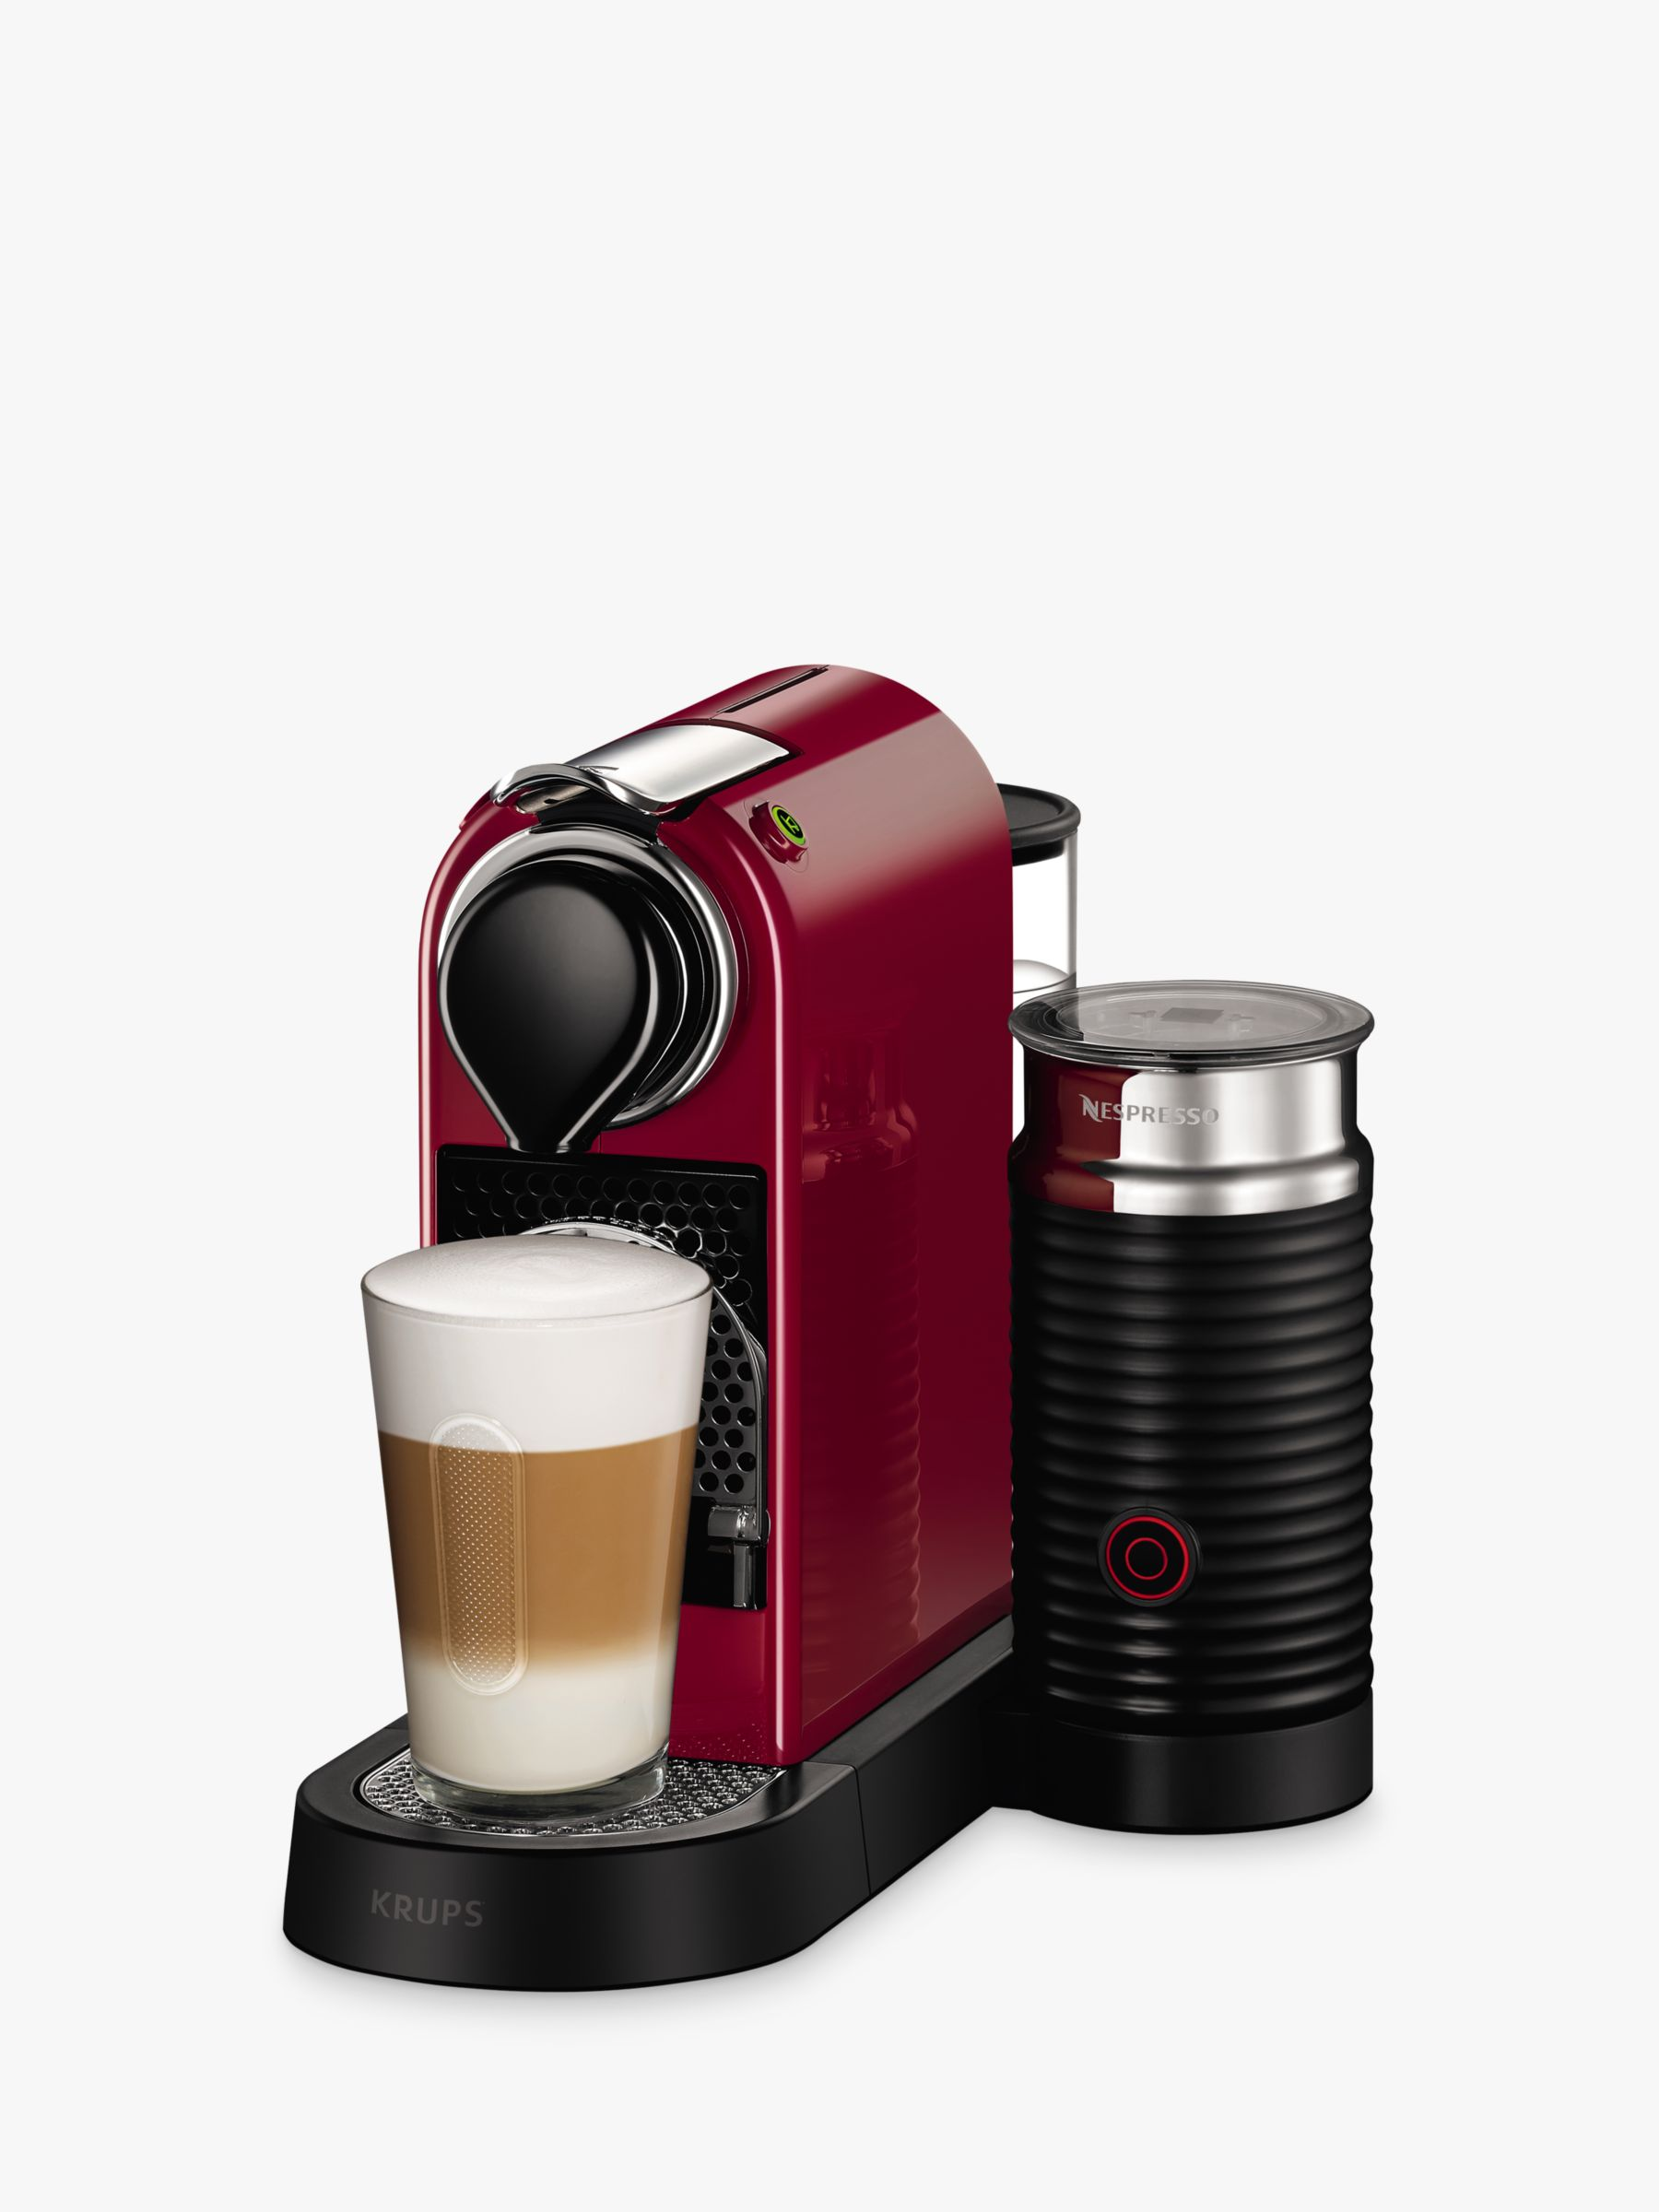 Krups Coffee Maker And Frother : Buy Nespresso CitiZ & Milk Coffee Machine by KRUPS with Milk Frother, Cherry Red John Lewis